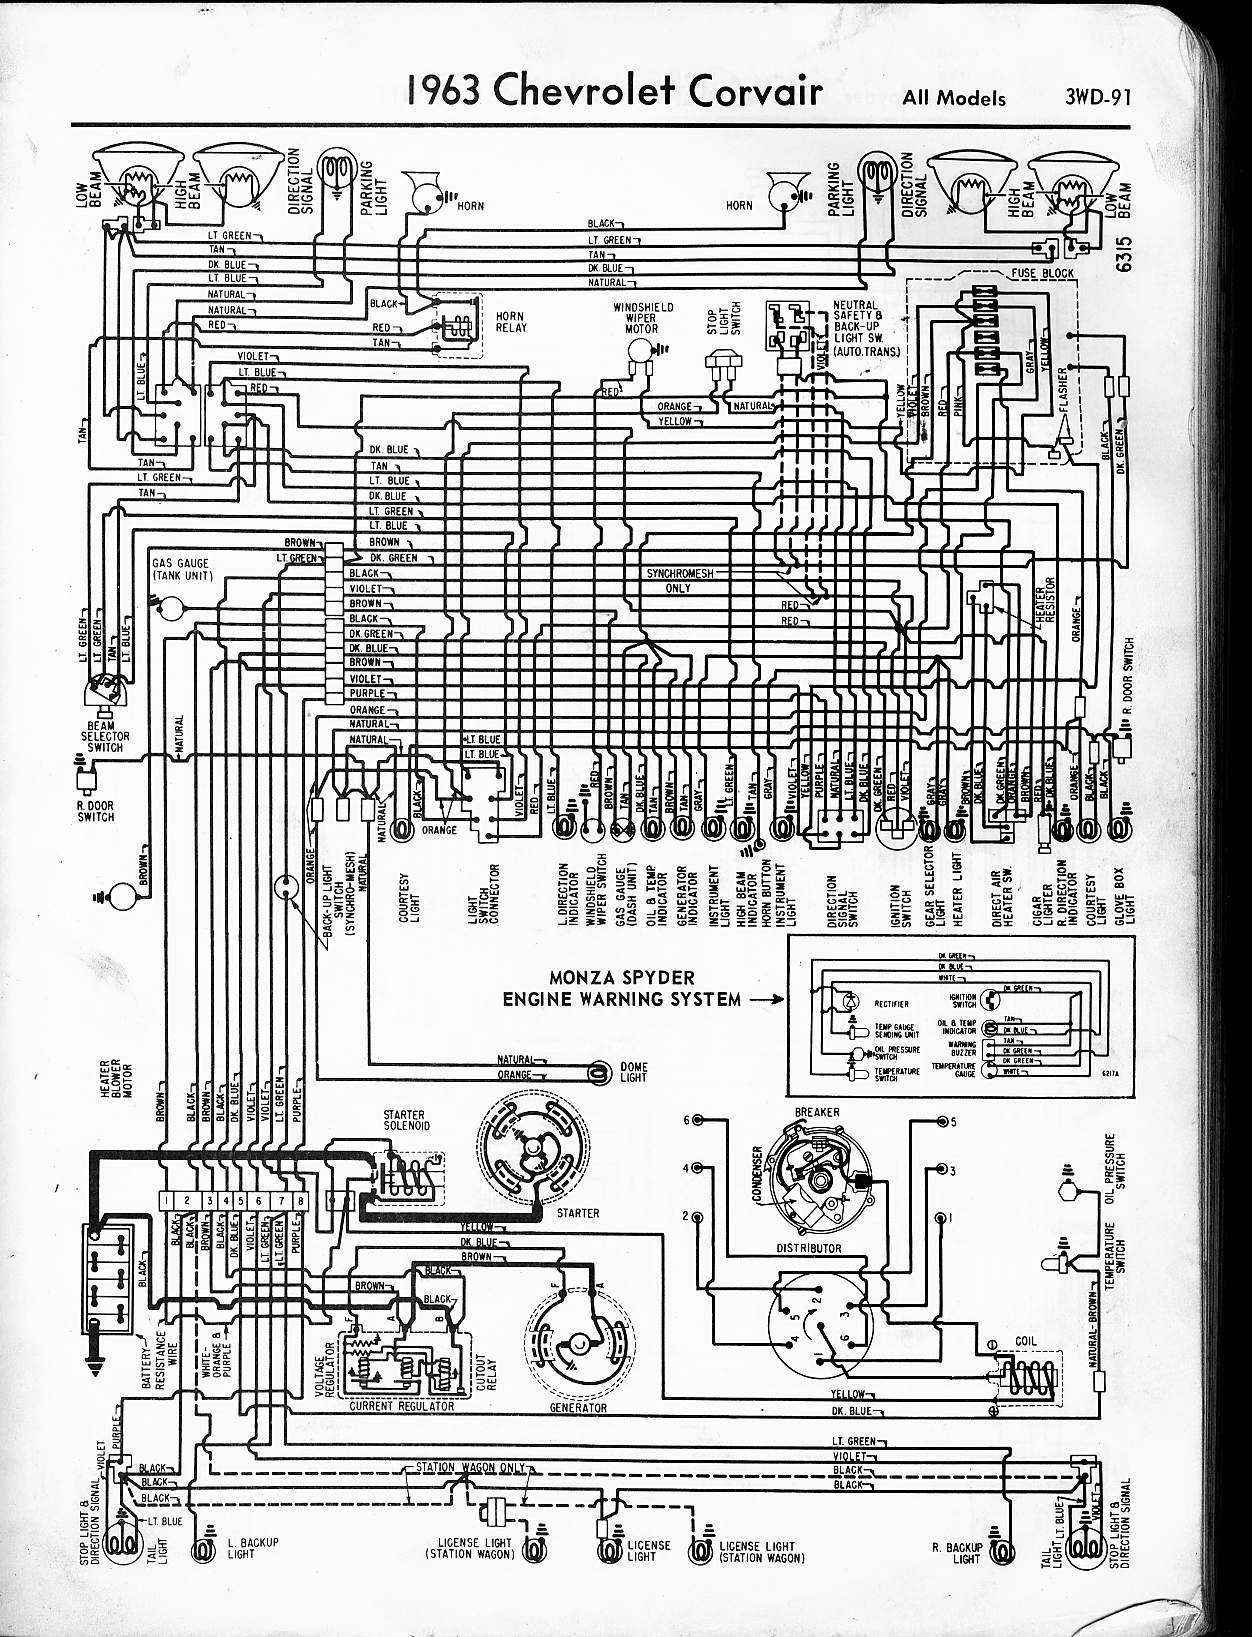 MWireChev63_3WD 091 57 65 chevy wiring diagrams 1960 chevy impala wiring diagram at crackthecode.co